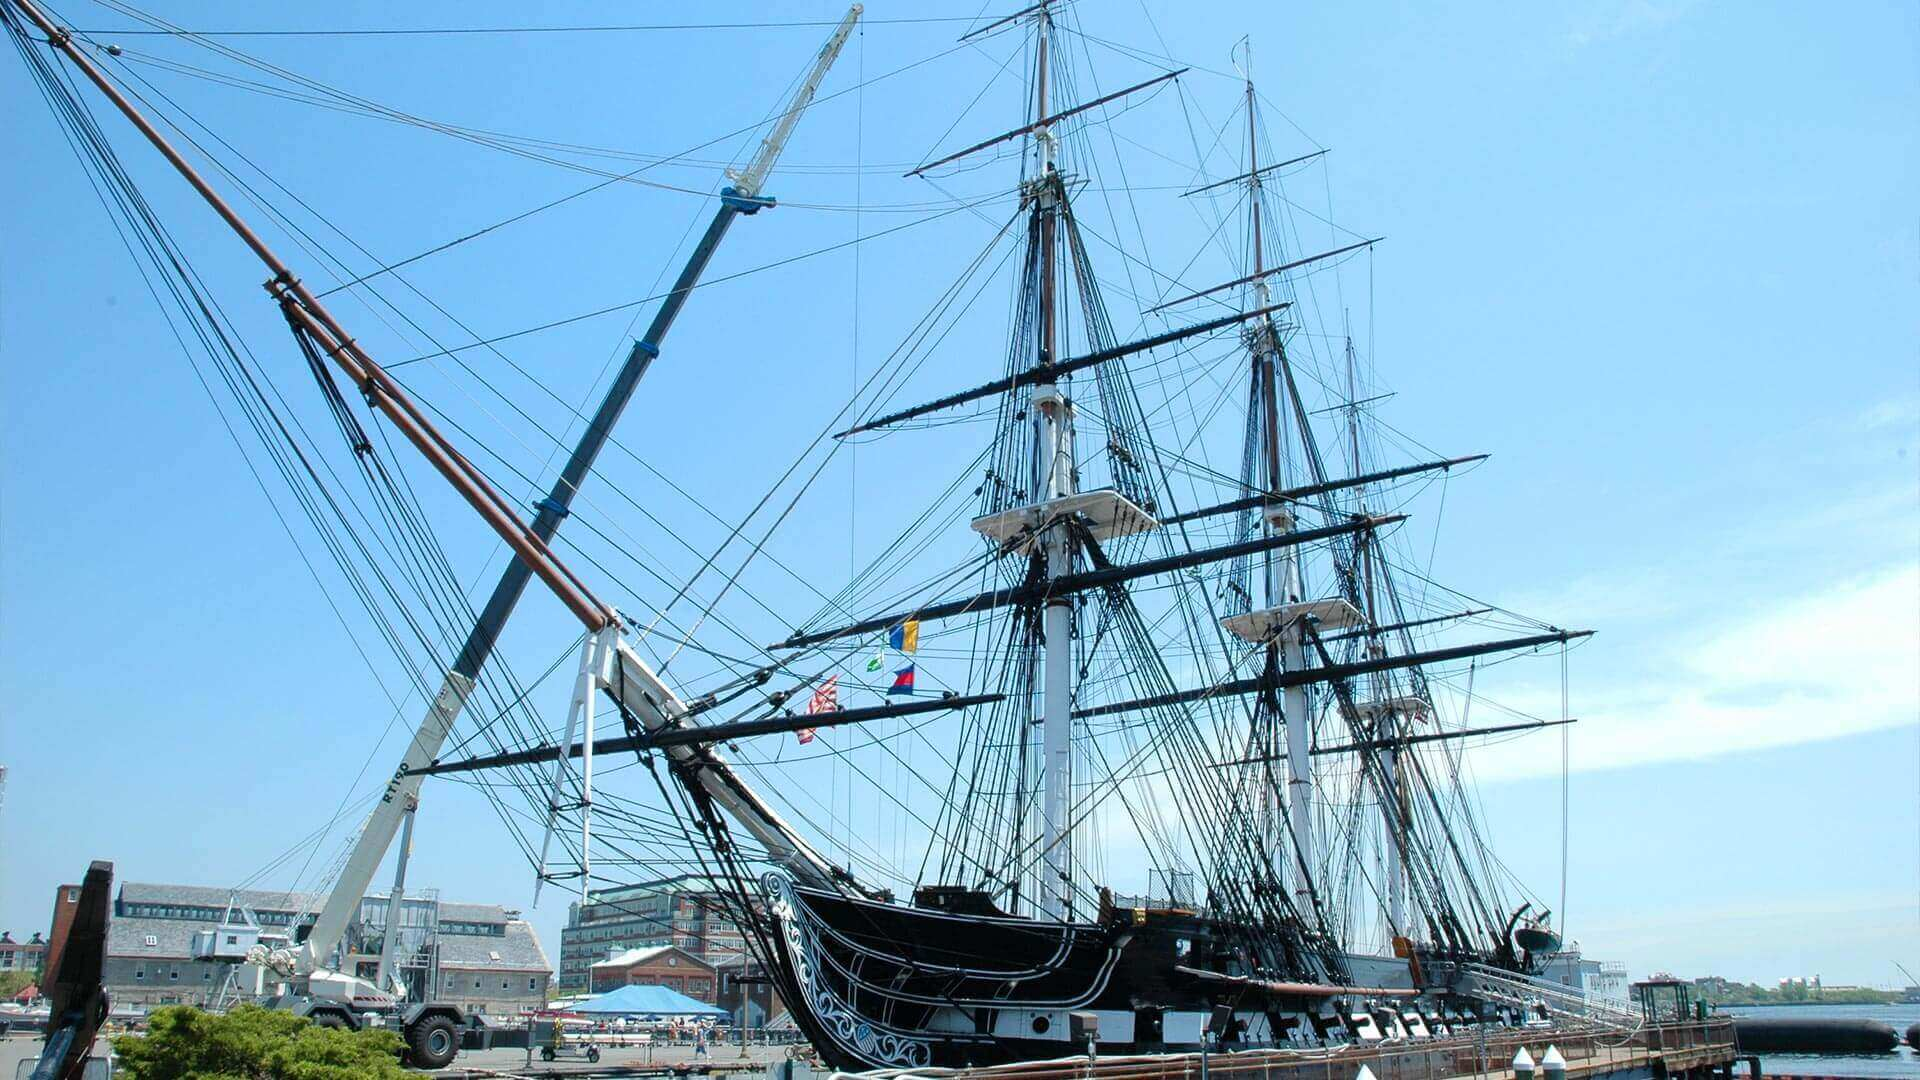 Side view of the USS Constitution in Boston